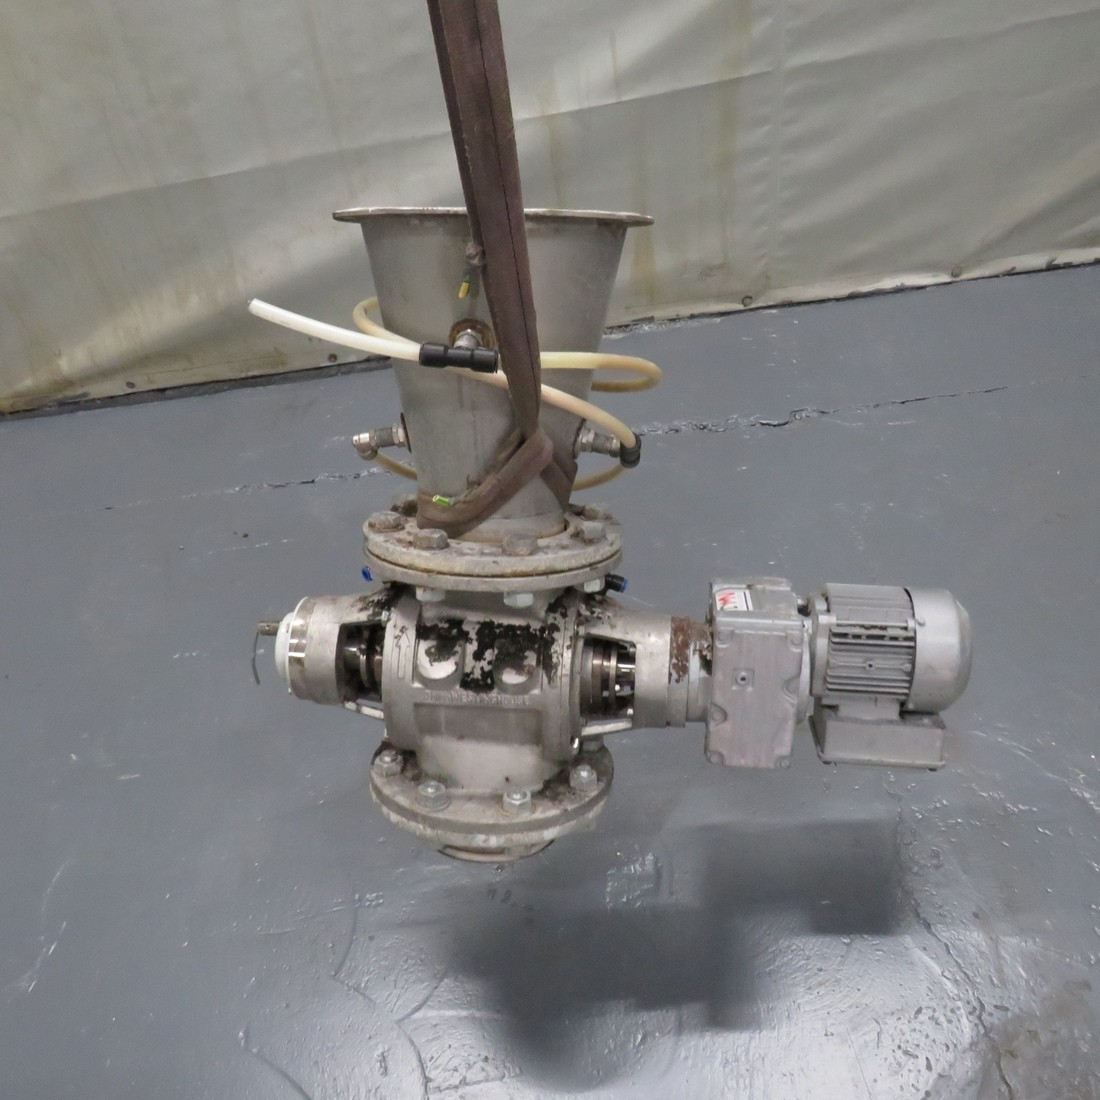 R6P825 Stainless steel DMN-WESTINGHOUSE rotary valves